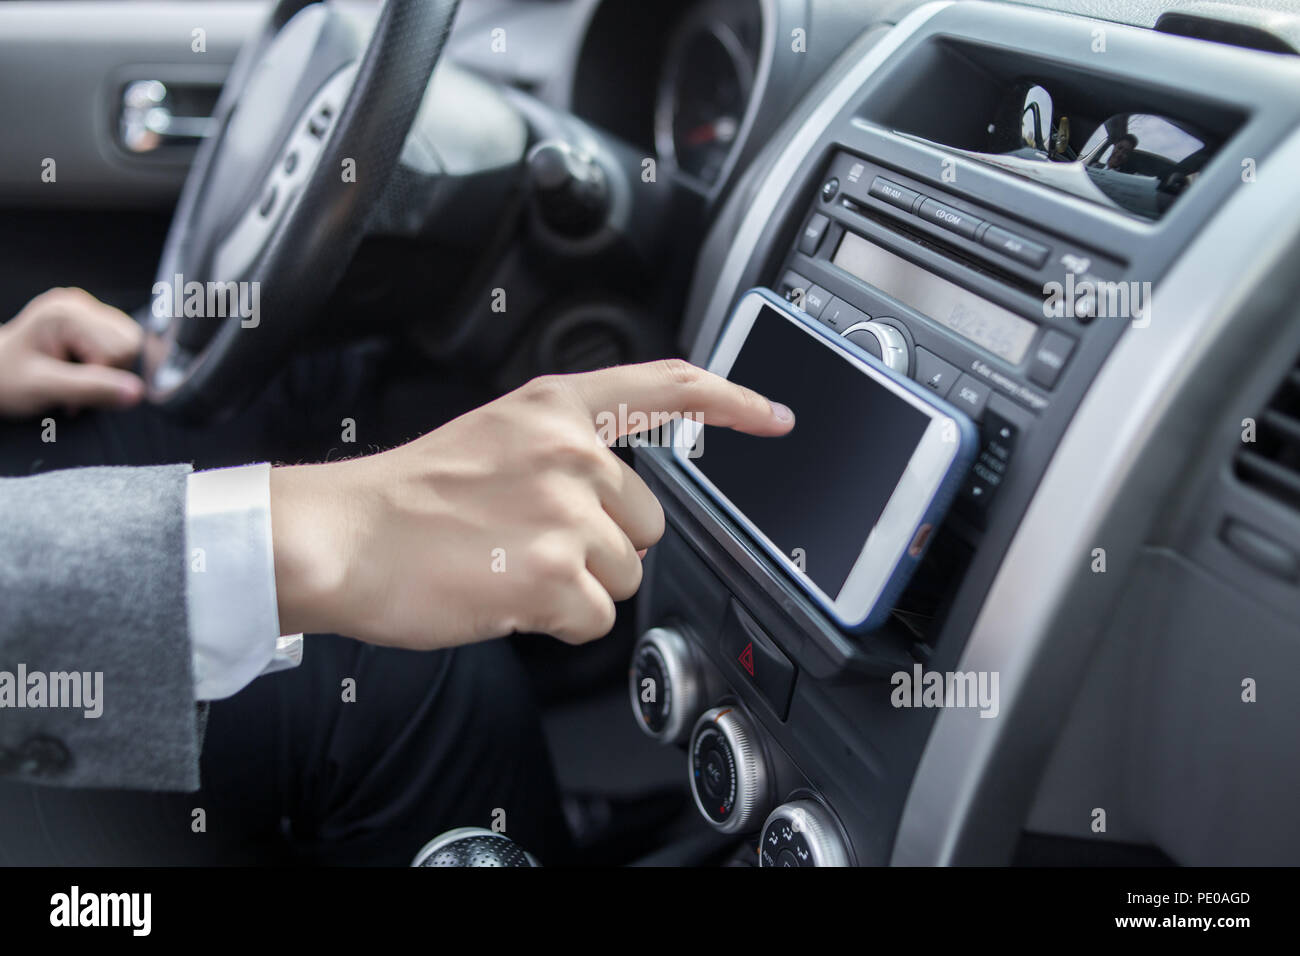 man driving car with navigation system - Stock Image